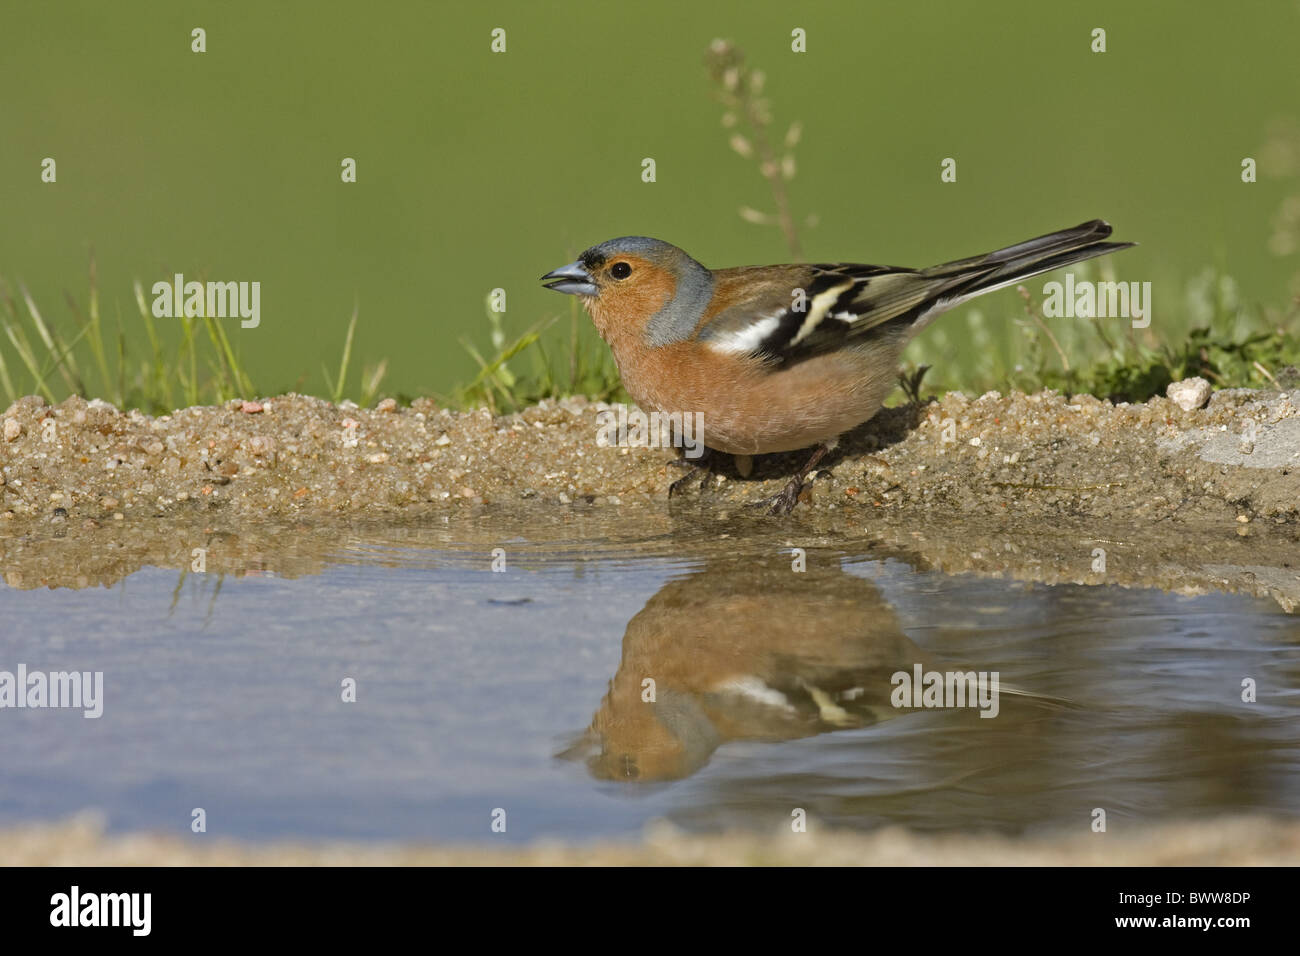 Chaffinch (Fringilla coelebs) adult male, drinking, standing at edge of pool, Spain - Stock Image